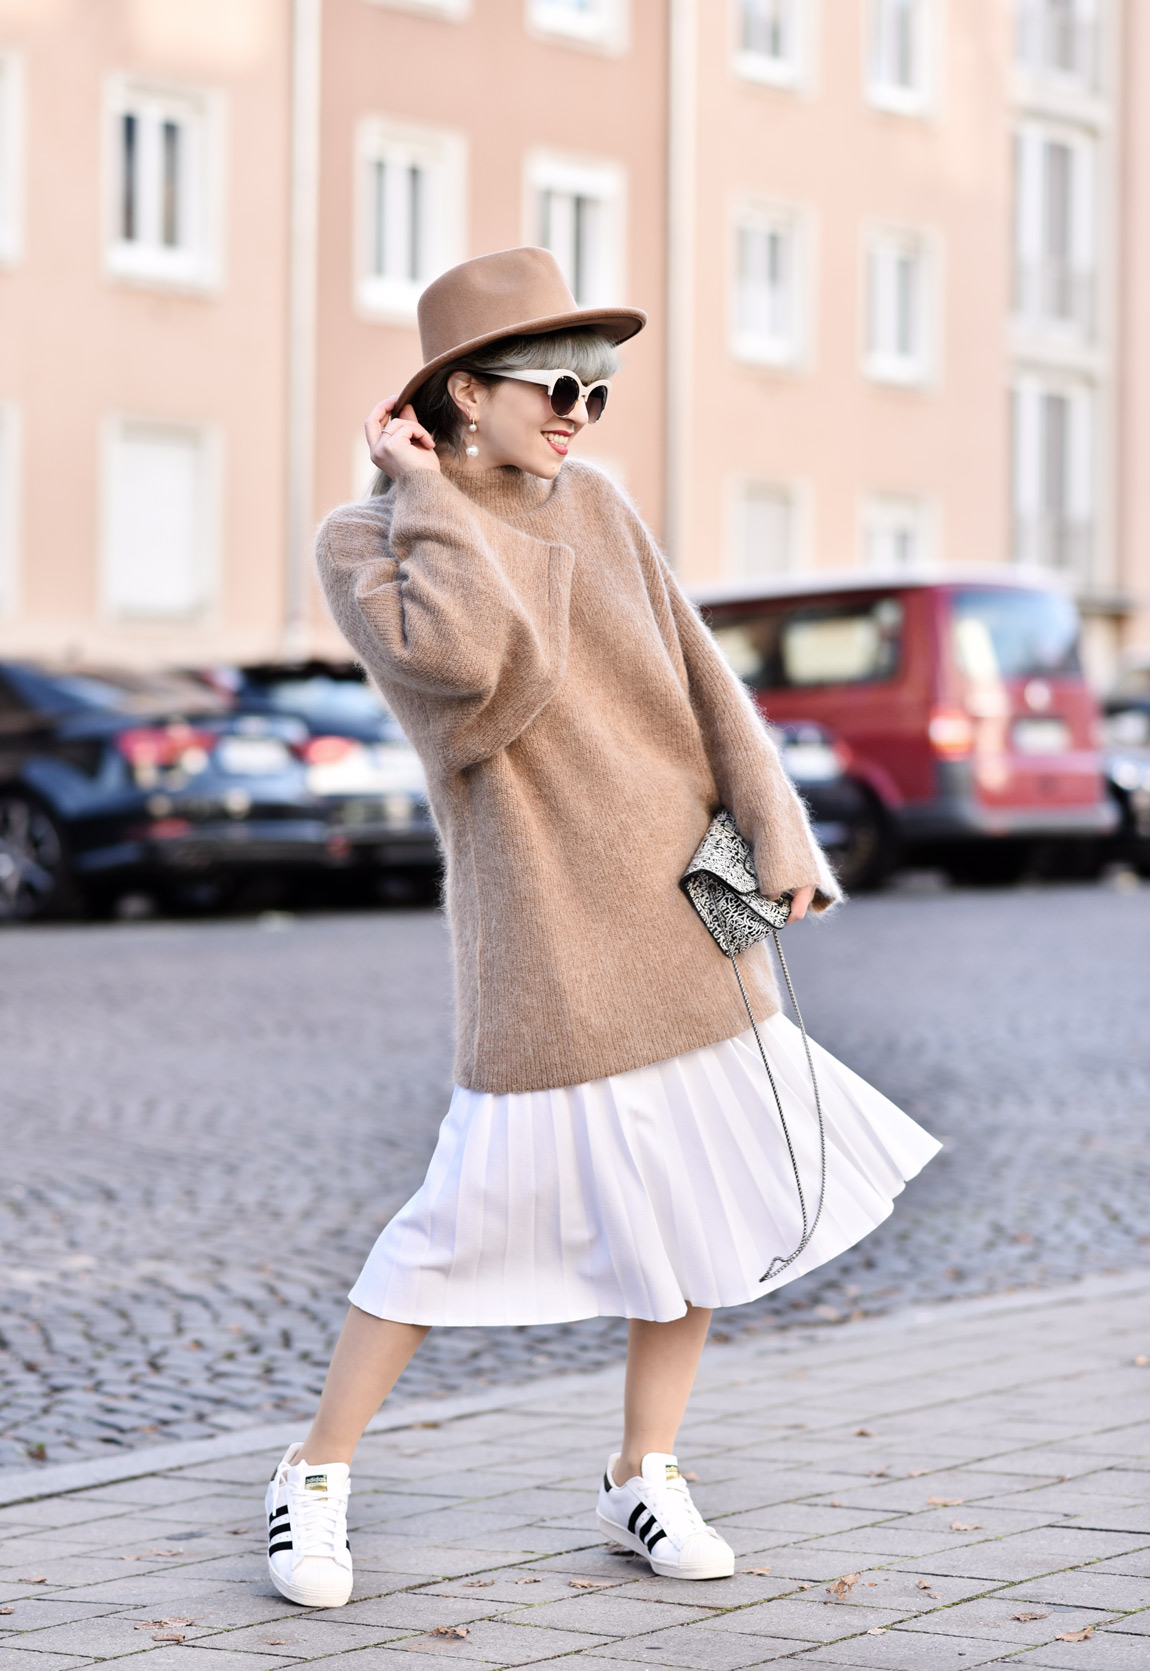 fashionblogger-modeblogger-muenchen-knit-strick-winter-outfit-streetstyle-plissee-midi-trend-camel-weiss